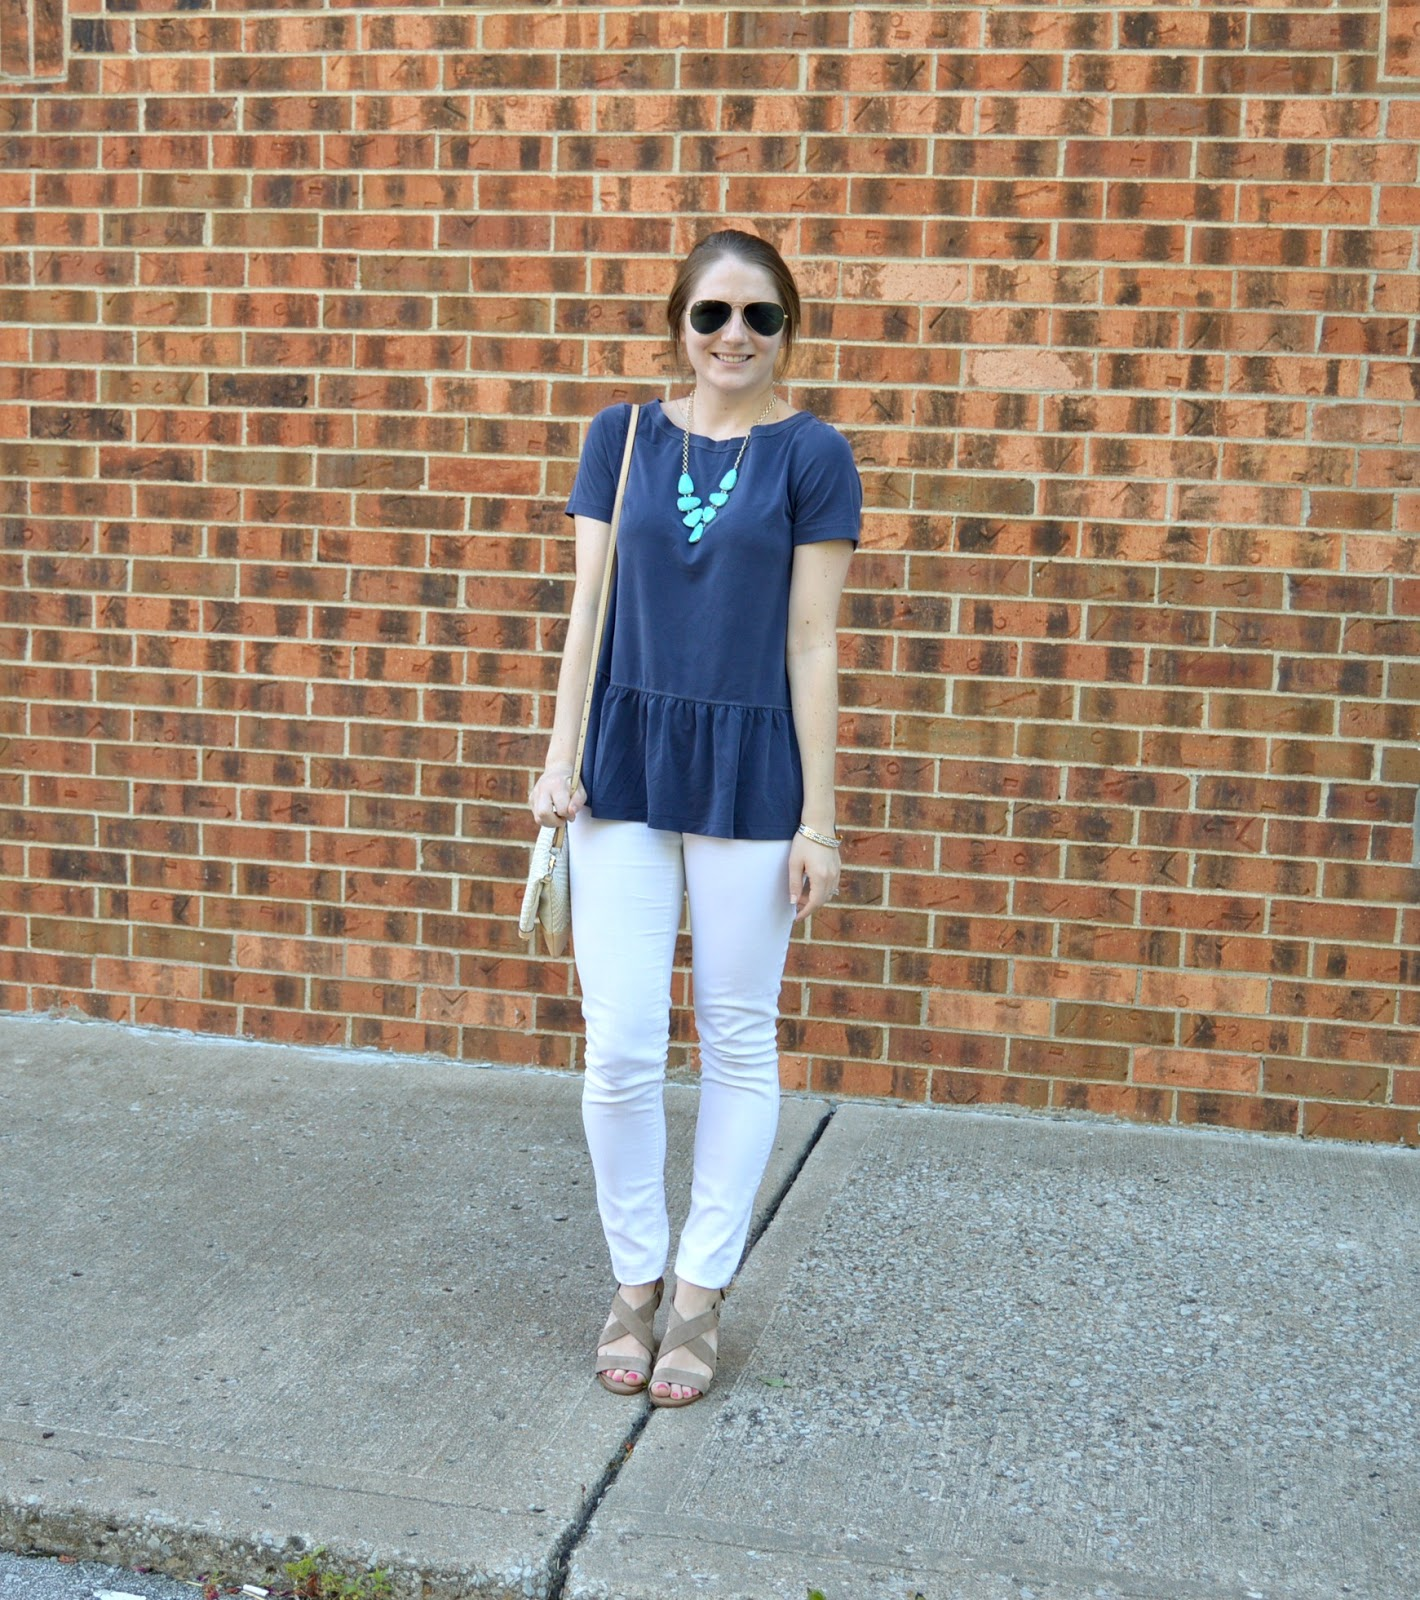 banana republic ruffle hem top with white skinny jeans | your life styled | | #itsbanana | what to wear with white jeans | white denim with a navy peplum top | navy peplum top | cute outfits for summer | what to wear this summer | summer outfit ideas | cute summer outfit ideas with white denim | a memory of us  | kansas city fashion blog